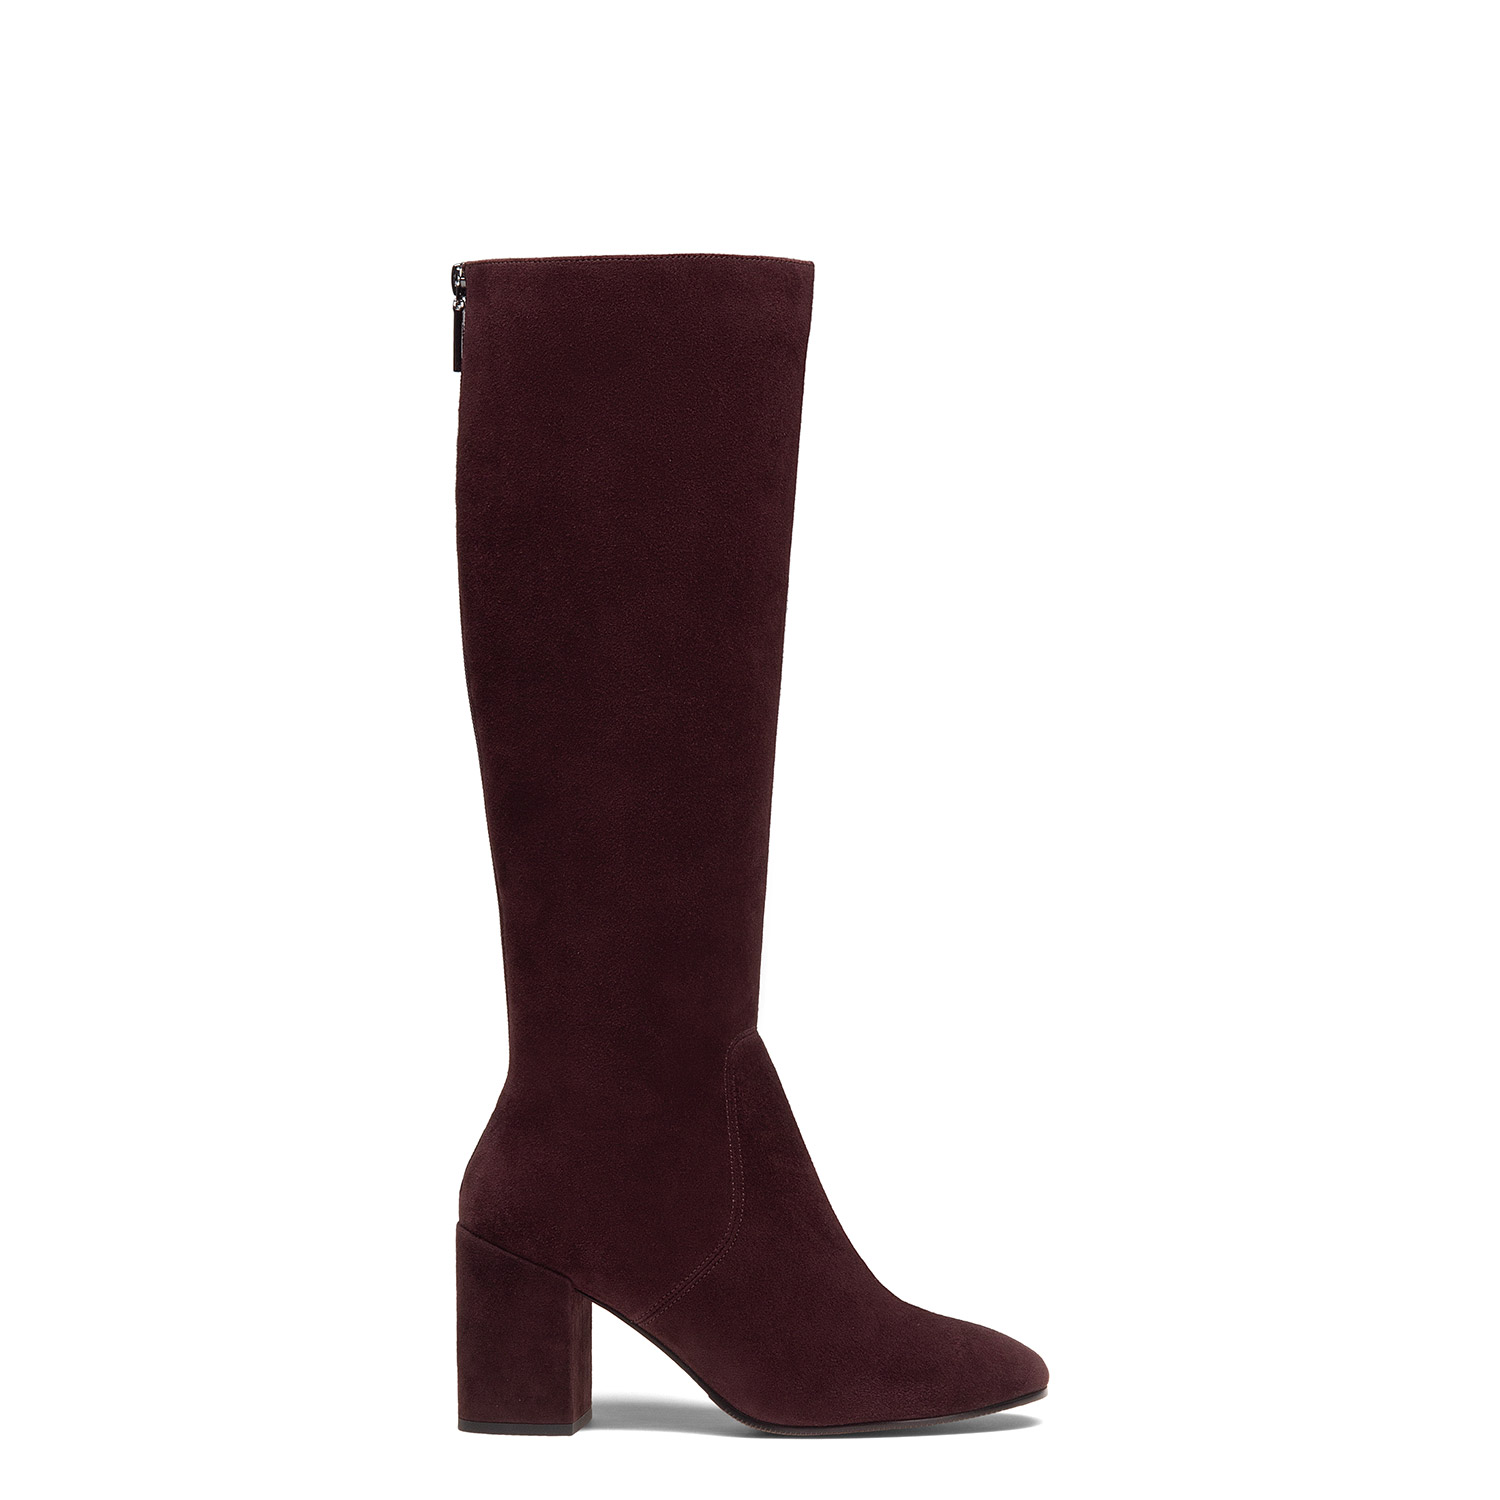 Women's fur-lined mid-calf boots PAZOLINI WN-IVV7-11